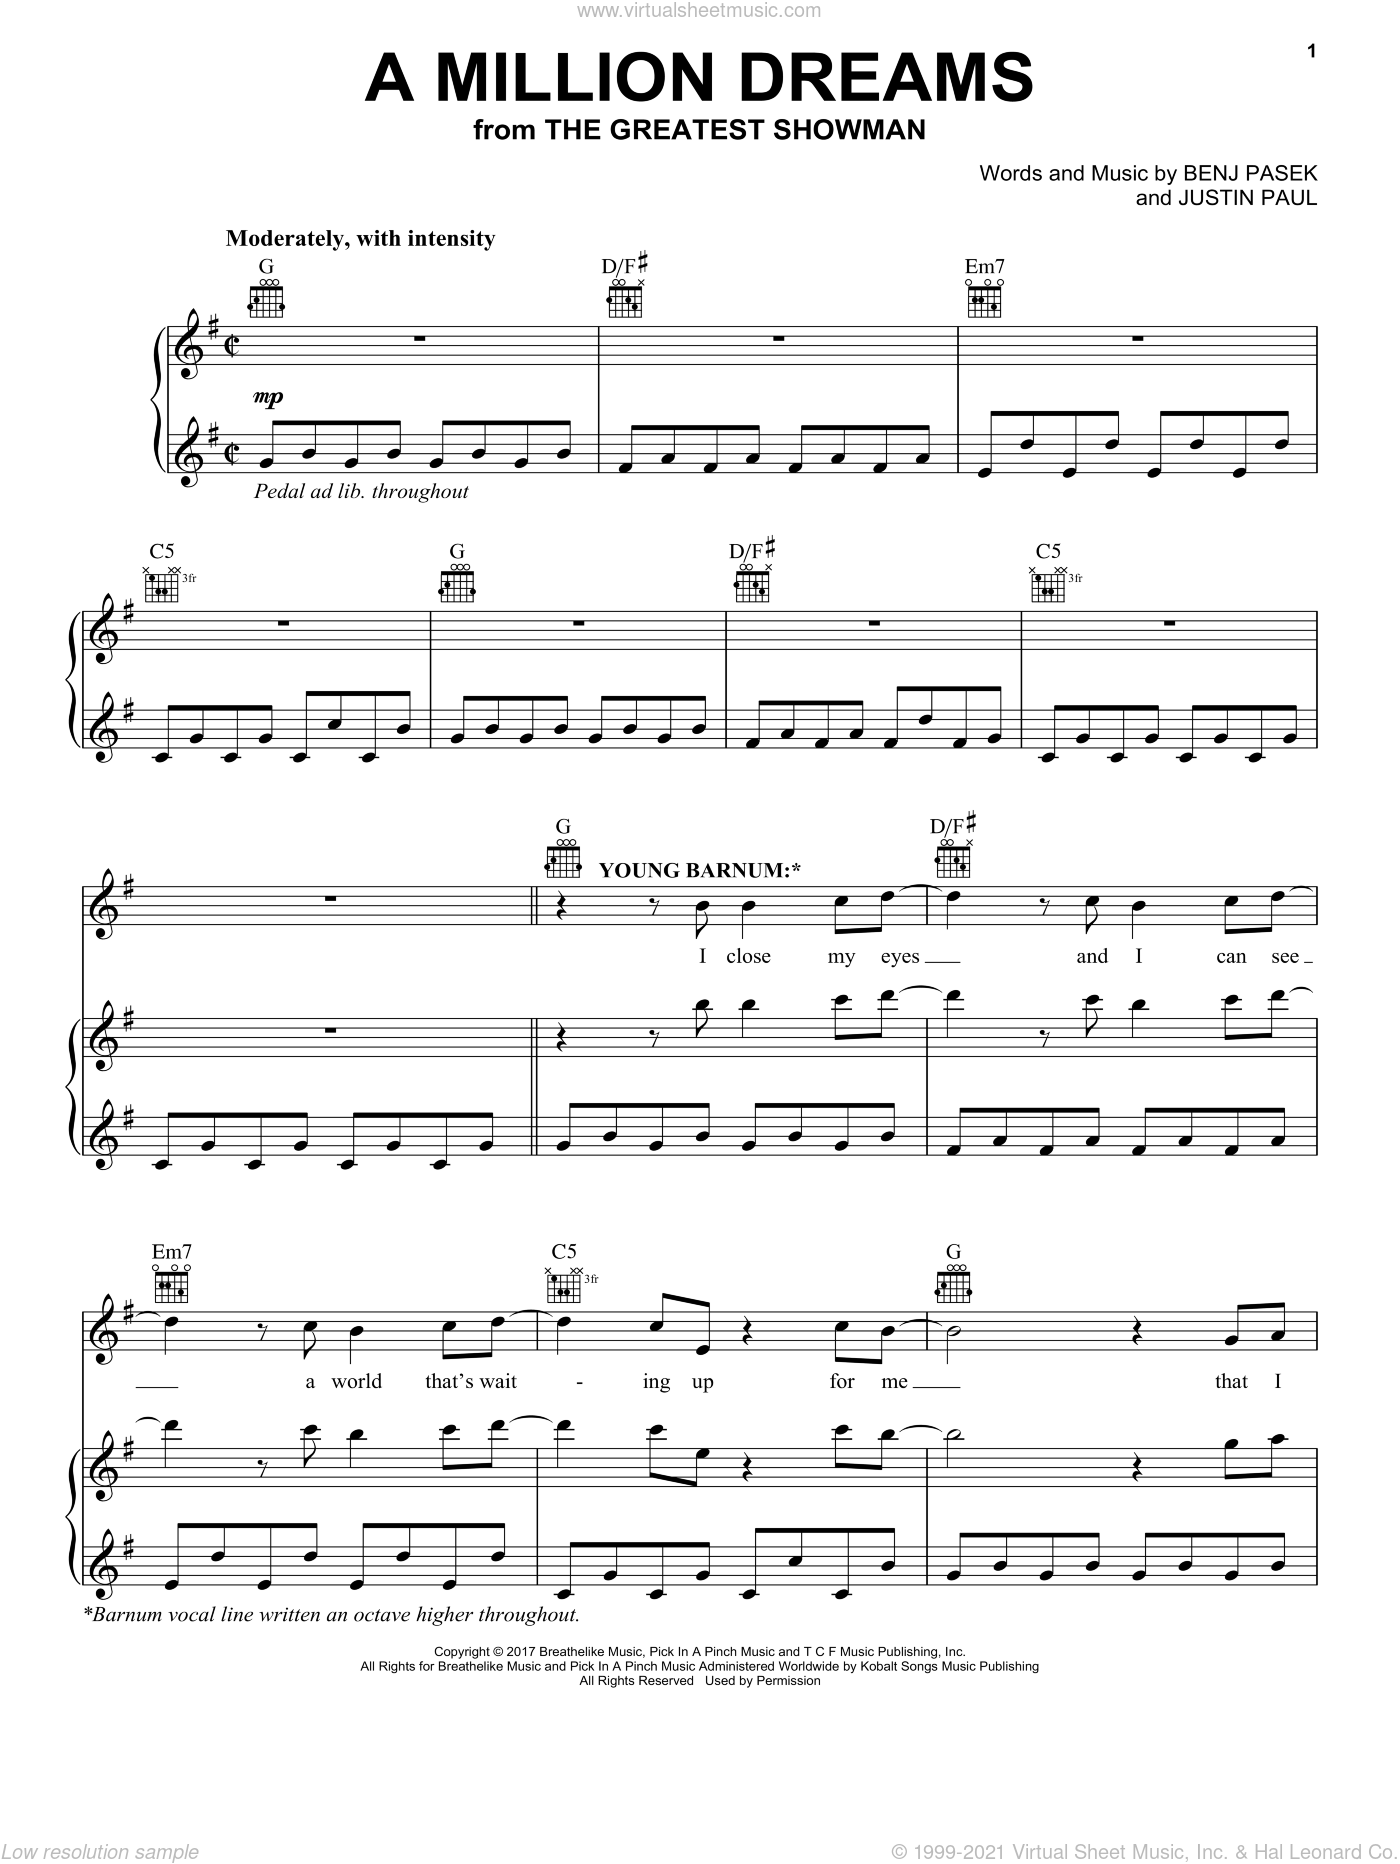 A Million Dreams sheet music for voice, piano or guitar by Pasek & Paul, Benj Pasek and Justin Paul, intermediate skill level